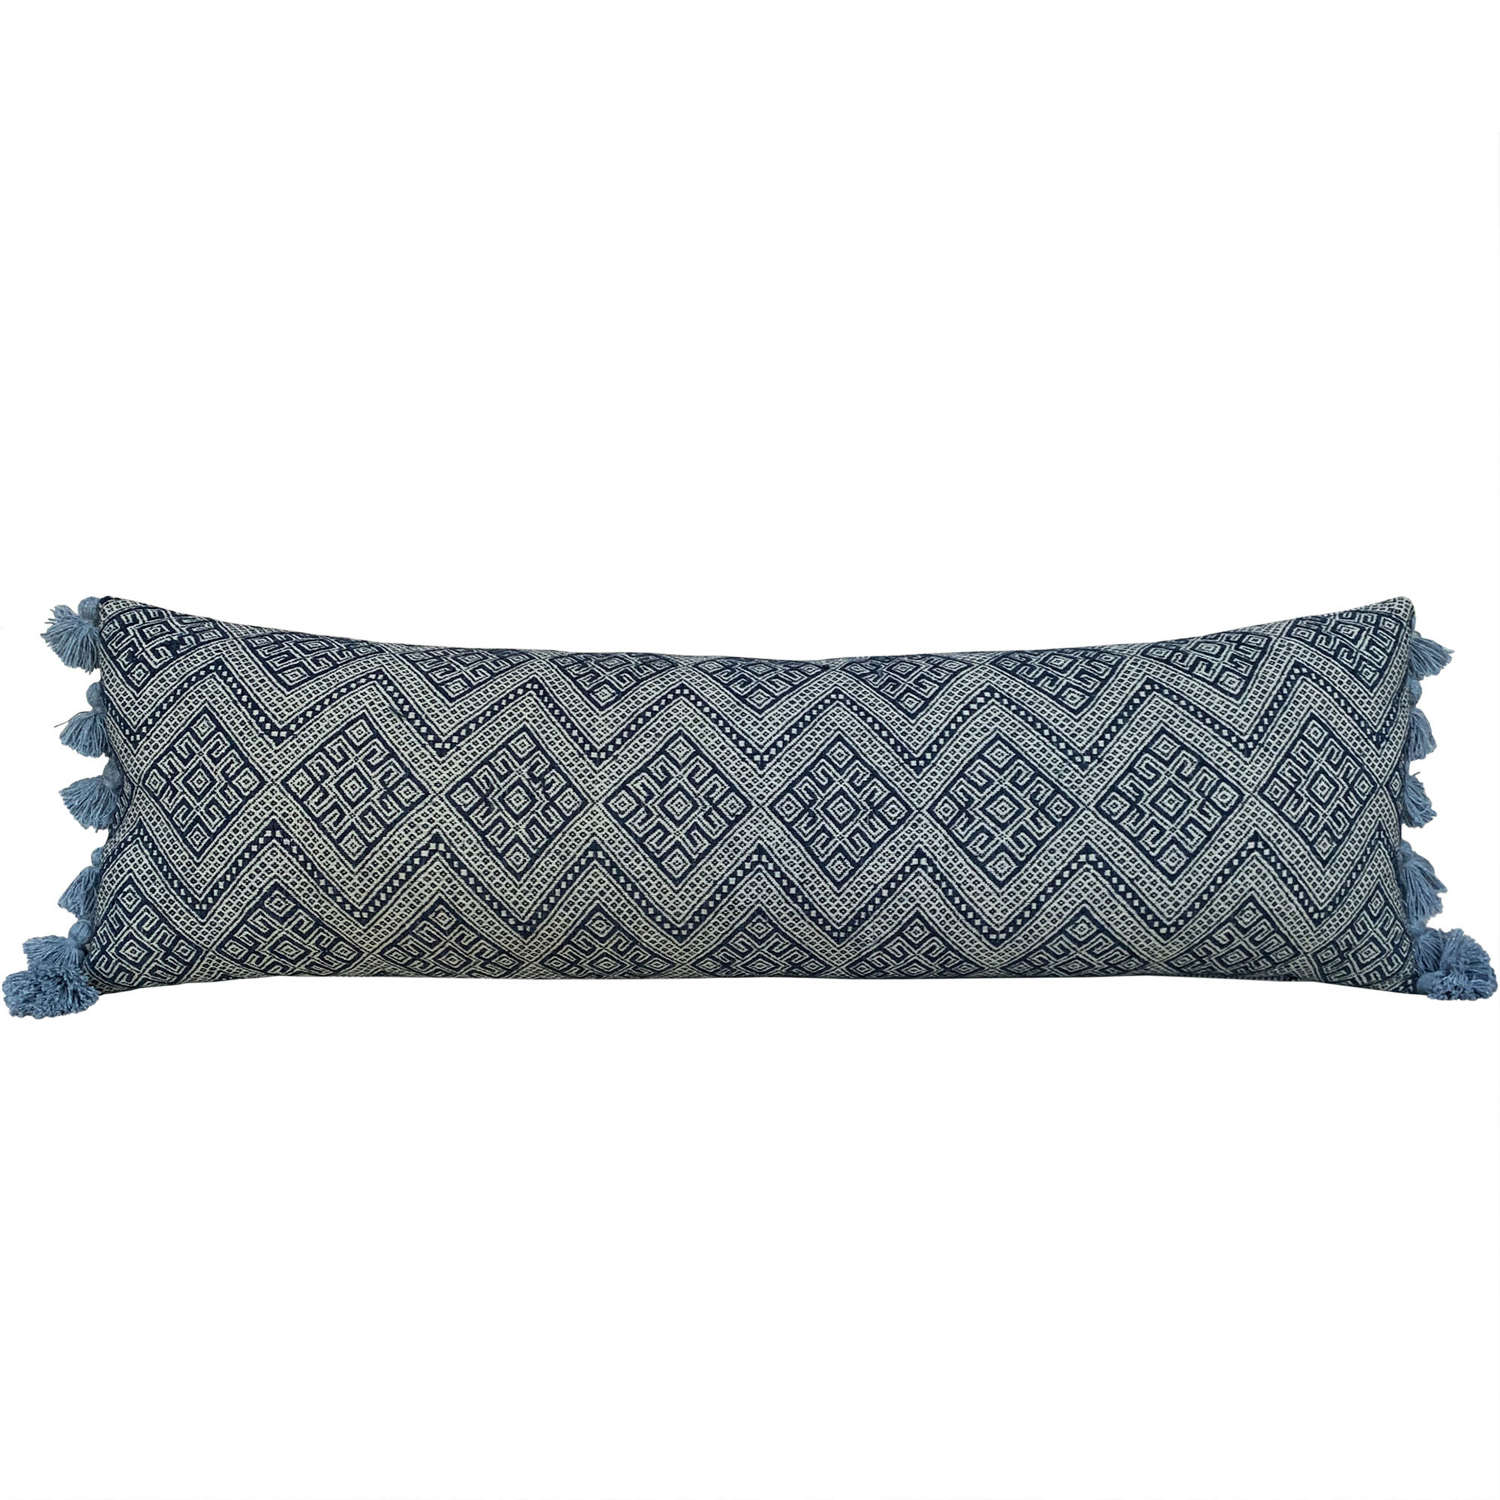 Long Zhuang cushion with tassels